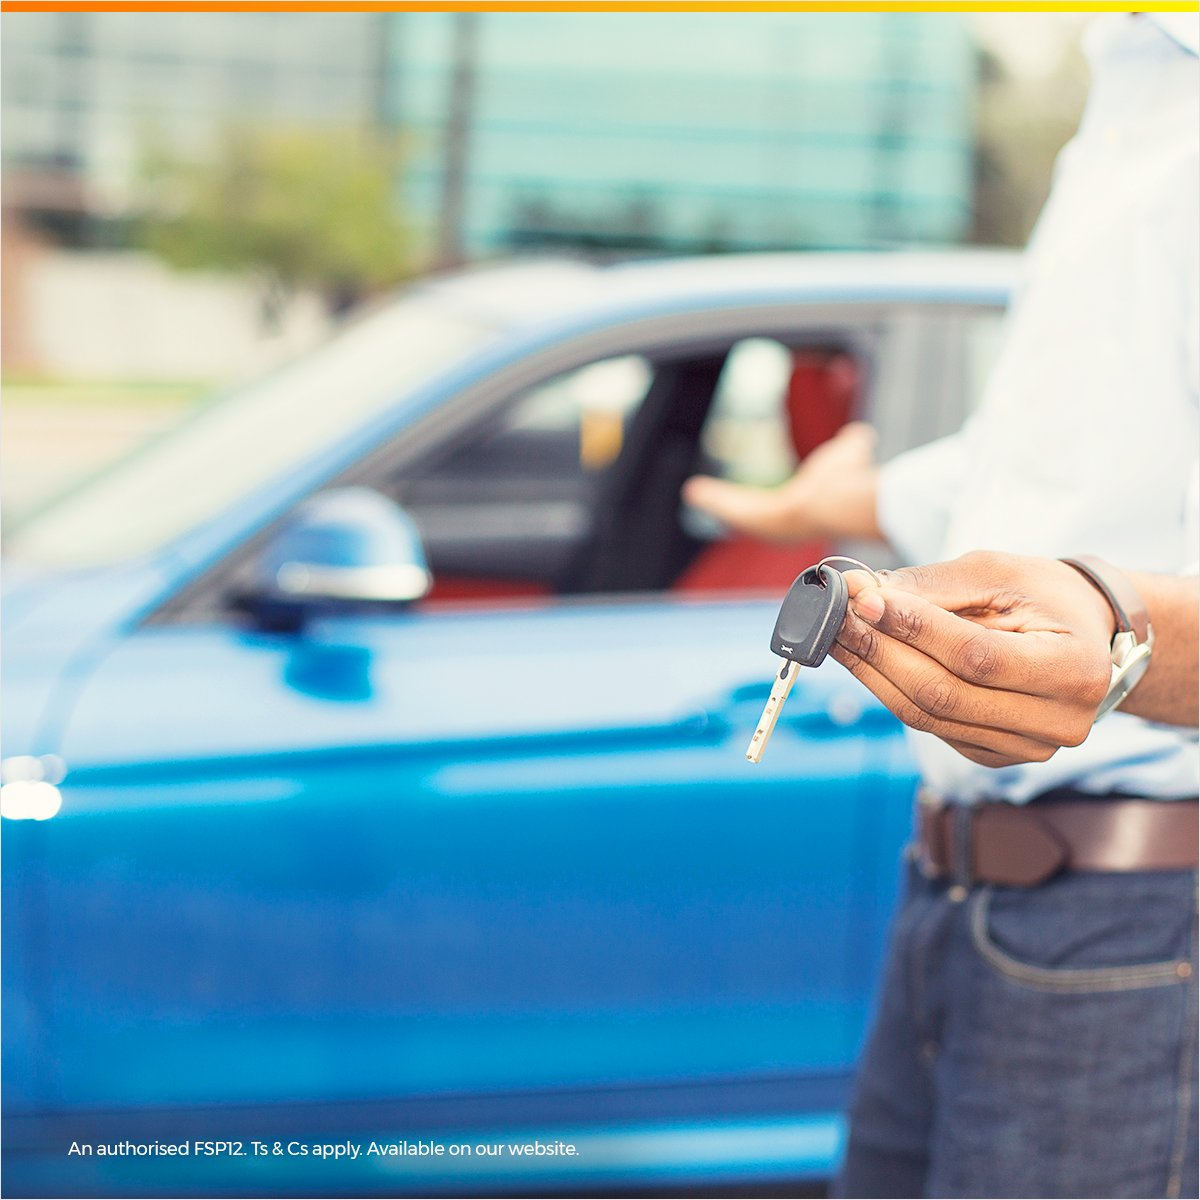 The most important thing about owning something of value is looking after it. Perfect ownership is protecting what you own. Make the wise insurance choice to protect your car against life's uncertainties – that's perfect ownership. https://bit.ly/33DOpiu pic.twitter.com/QRAKJ629Jp